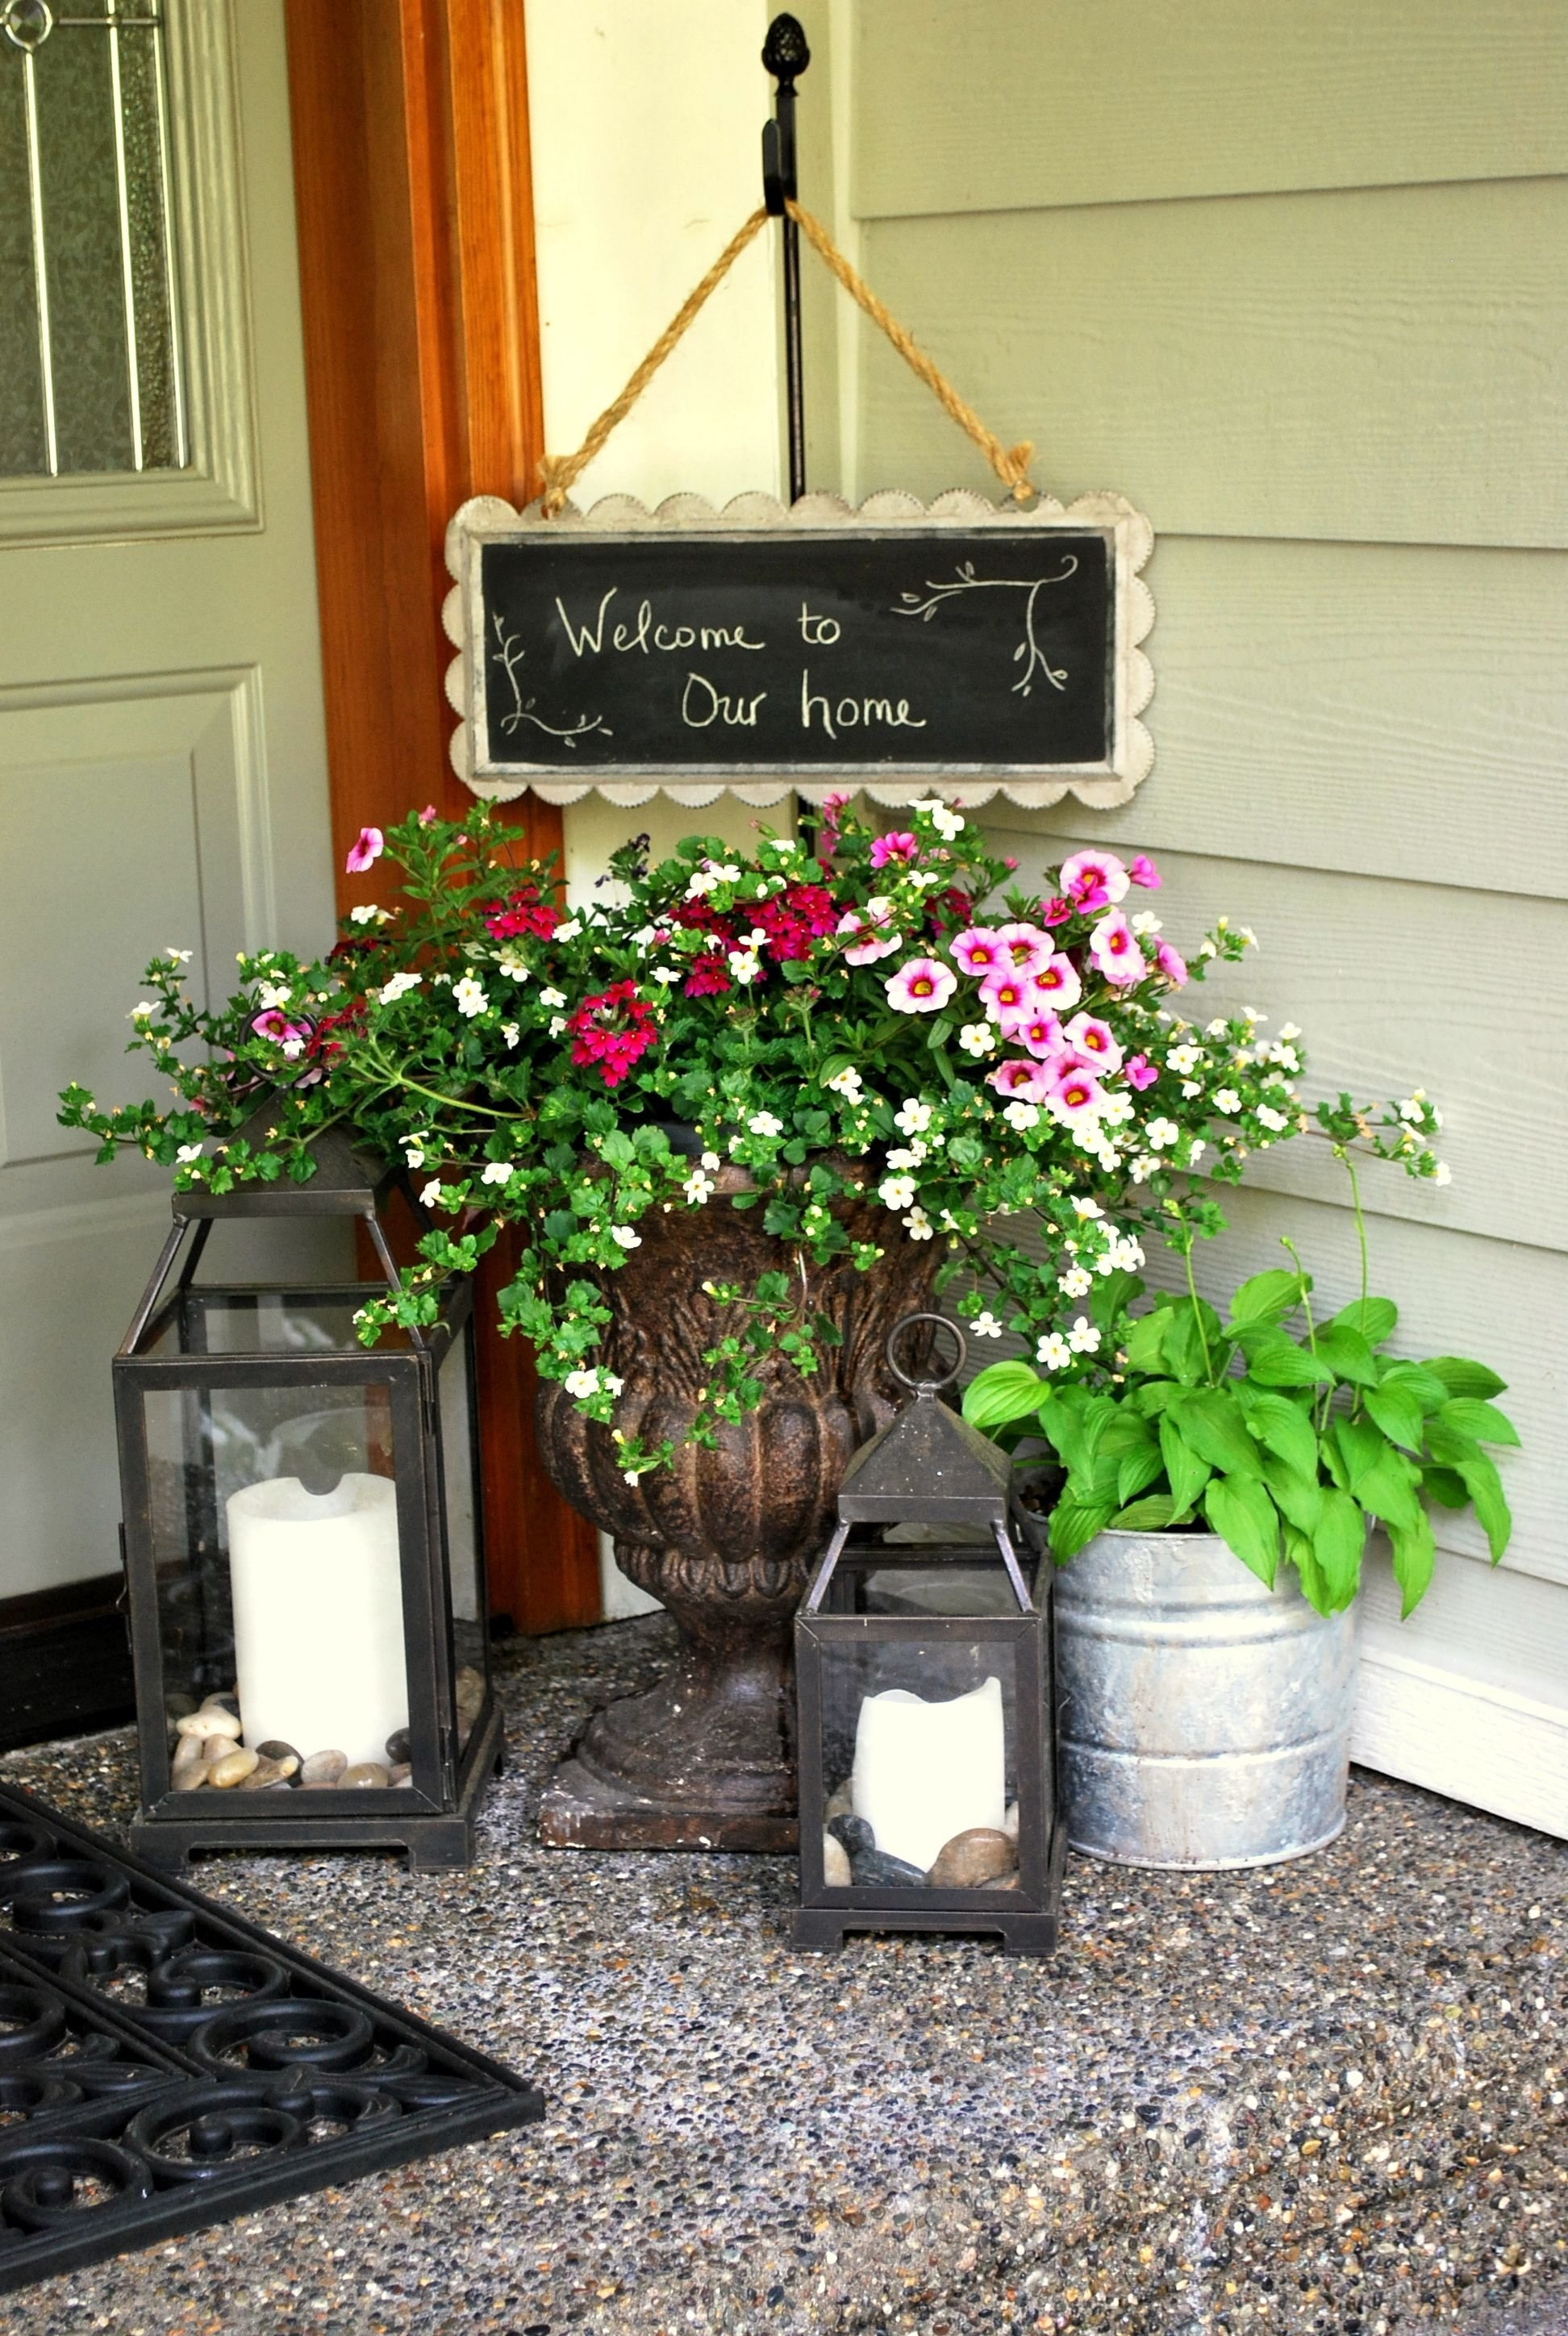 10 Fashionable Flower Pot Ideas For Front Porch a gathering place front porches porch and gardens 2021